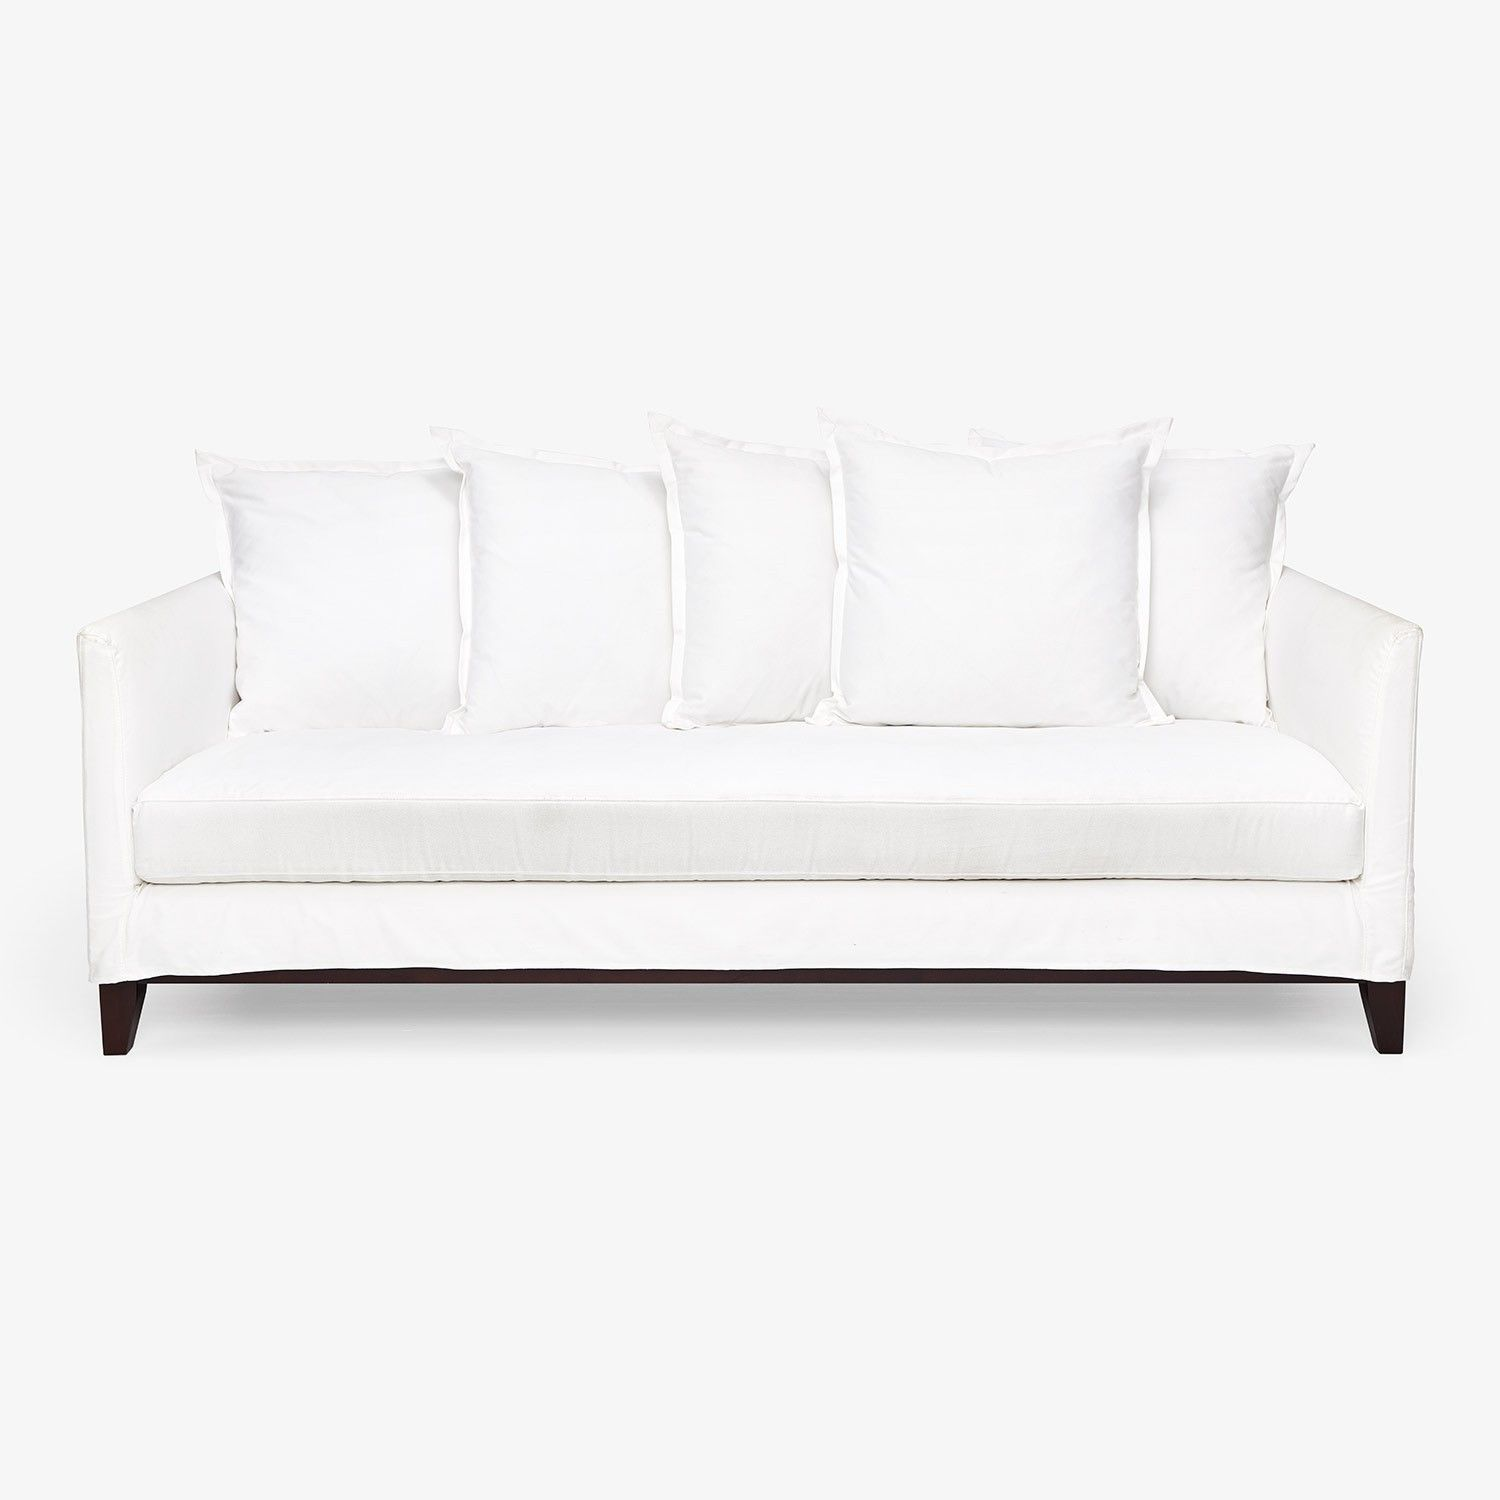 Exclusively at ABC, the Hampton sofa features a cool presence with a crisp, cotton slipcover and overstuffed pillows. Handcrafted from a Goodwood frame with richly stained legs, this clean-lined piece is simple sophistication meets sustainability.